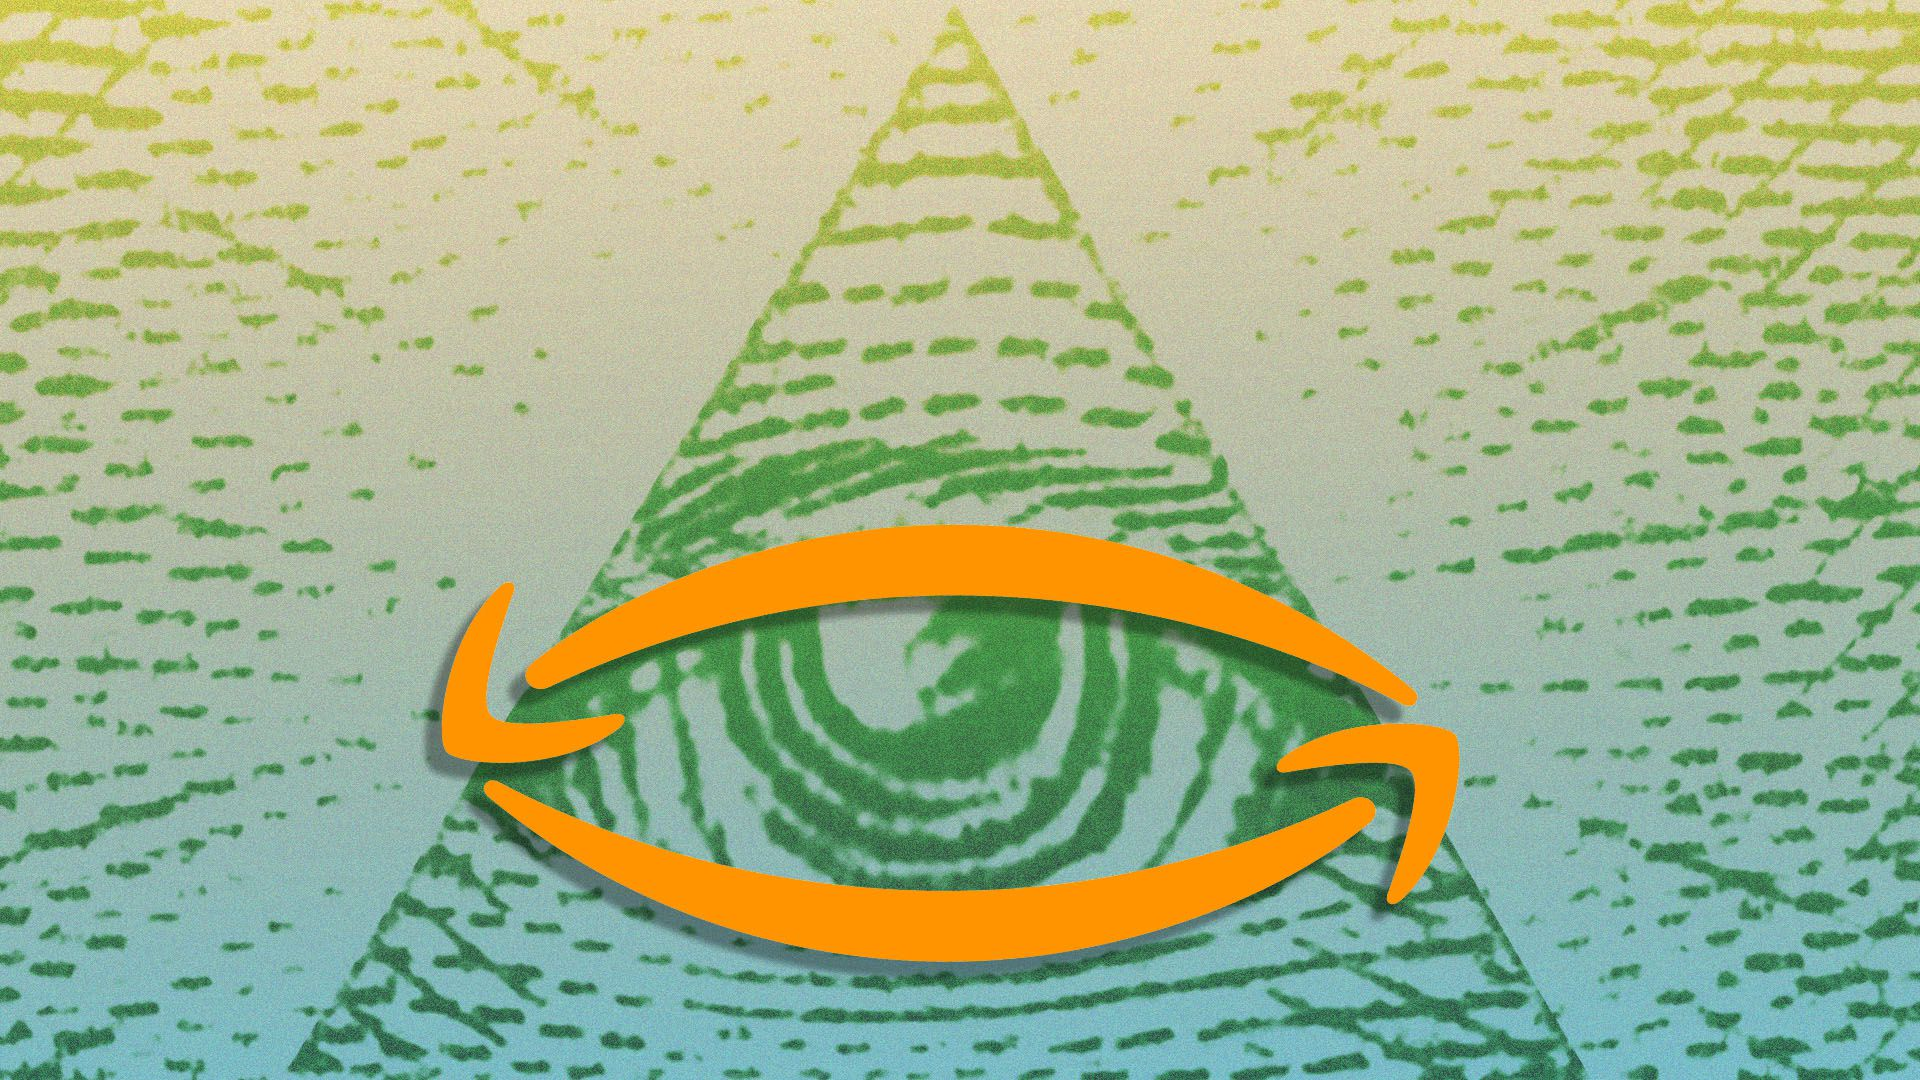 Illustration of the Amazon logo over the Eye of Providence